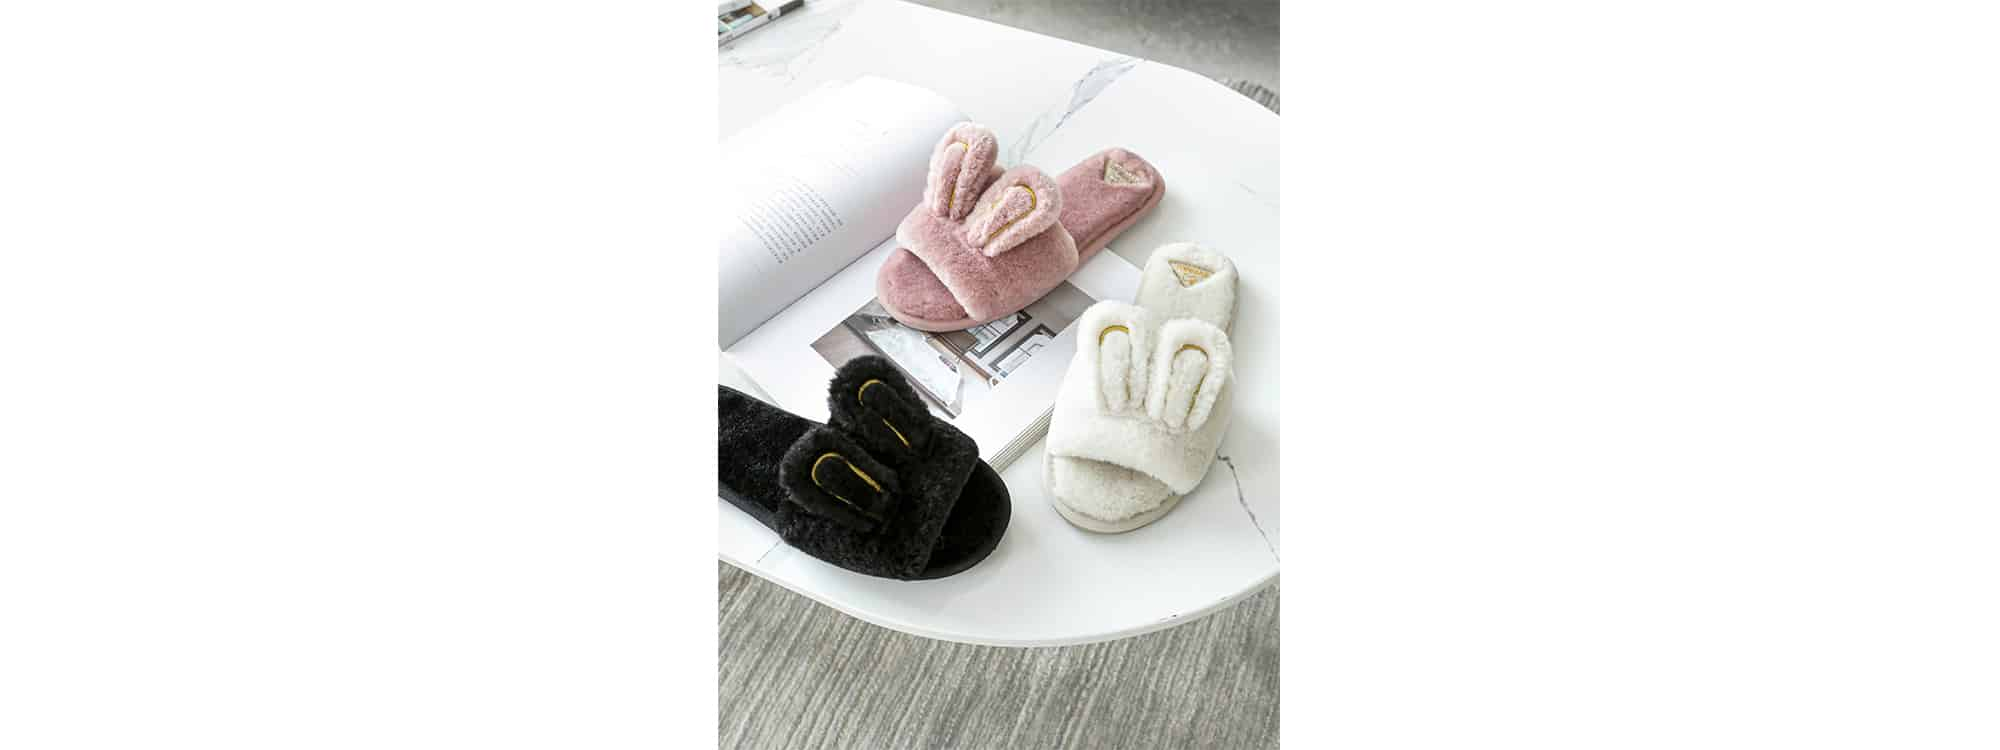 WIN a Bunny Slippers